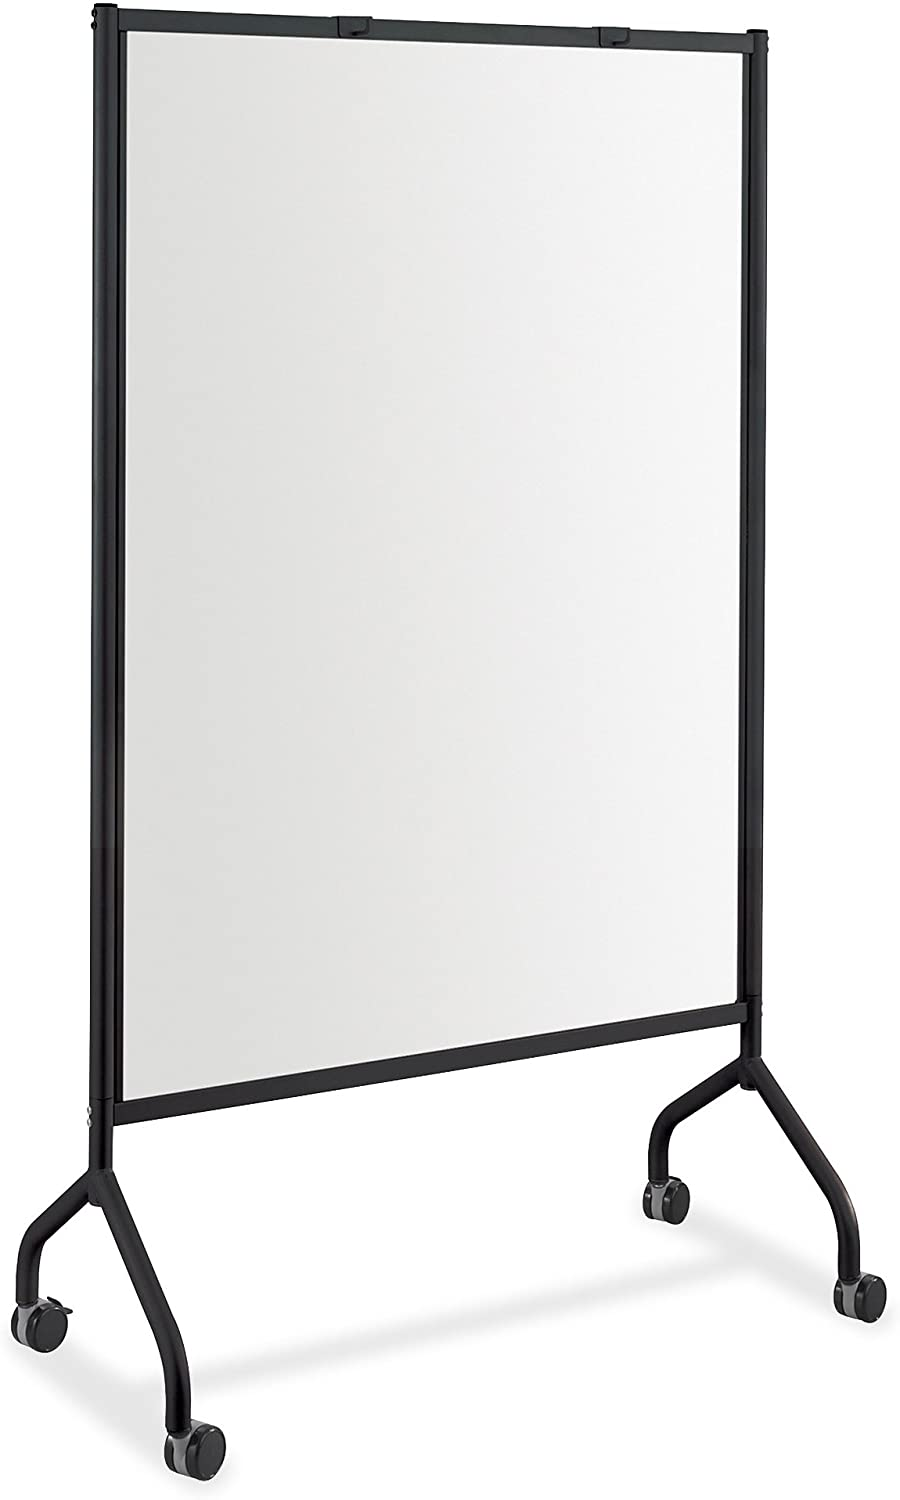 "Safco Products Impromptu Mobile Full Whiteboard Screen Double-sided Magnetic Dry Erase Board, Commercial-Grade Steel Frame, Swivel Wheels, Accessory Shelf, 42""W x 72""H, Black"